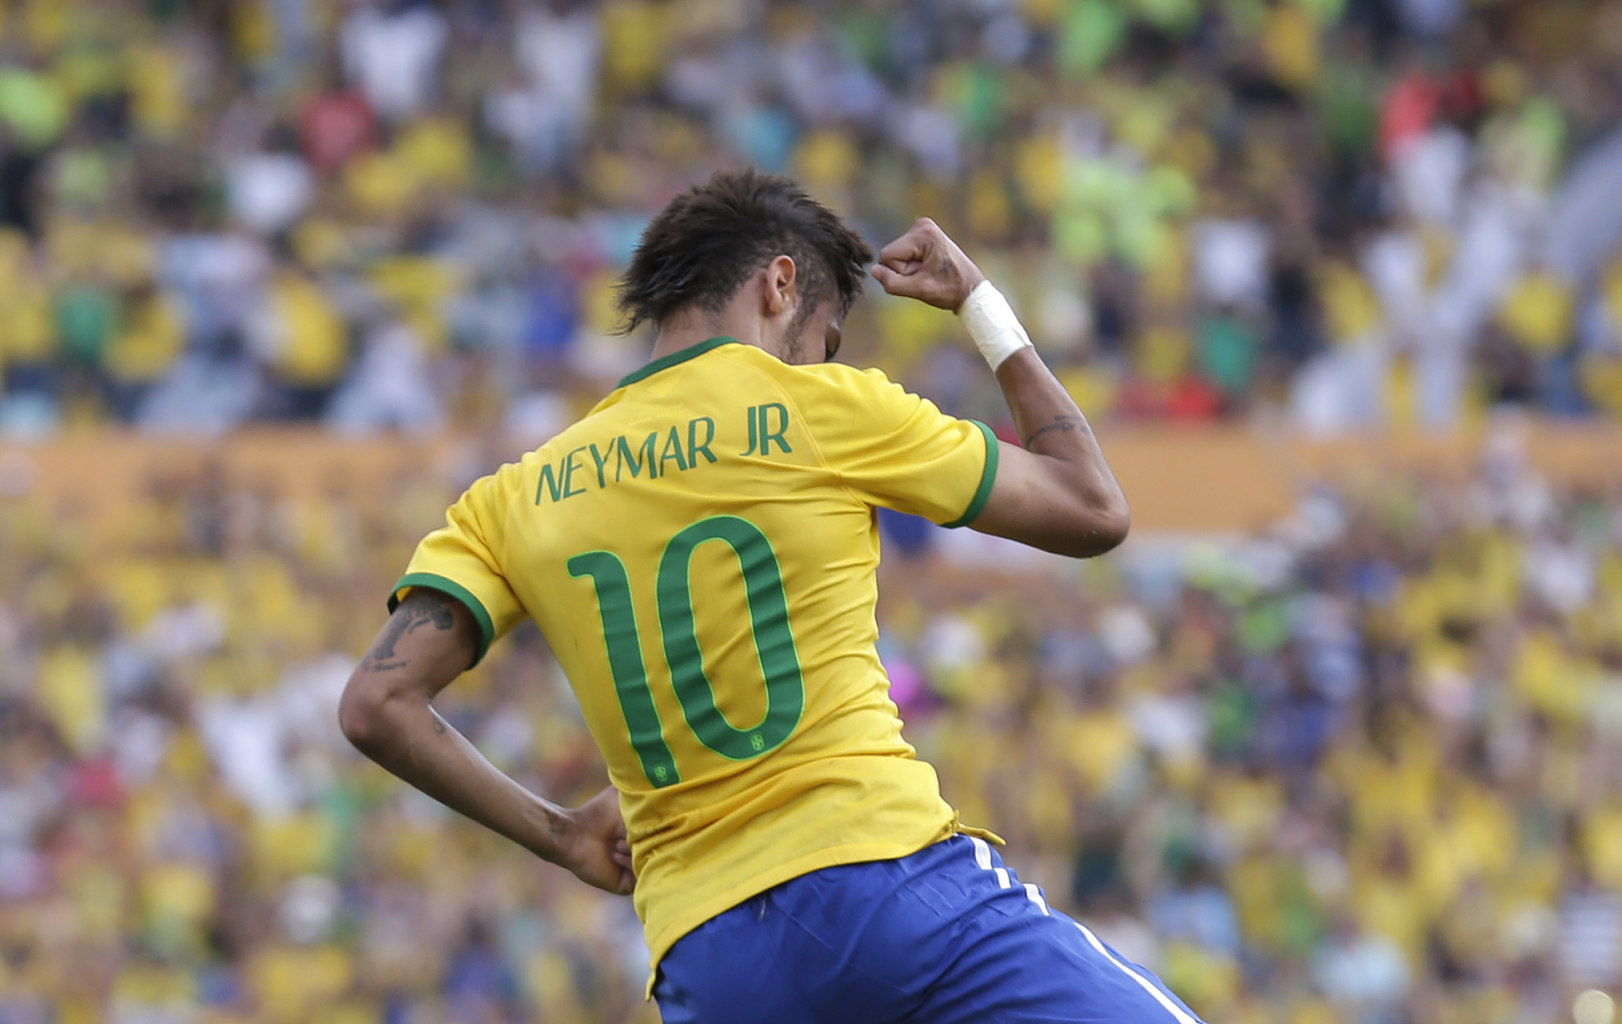 Neymar wearing Brazil's number 10 jersey in the FIFA World Cup in 2014